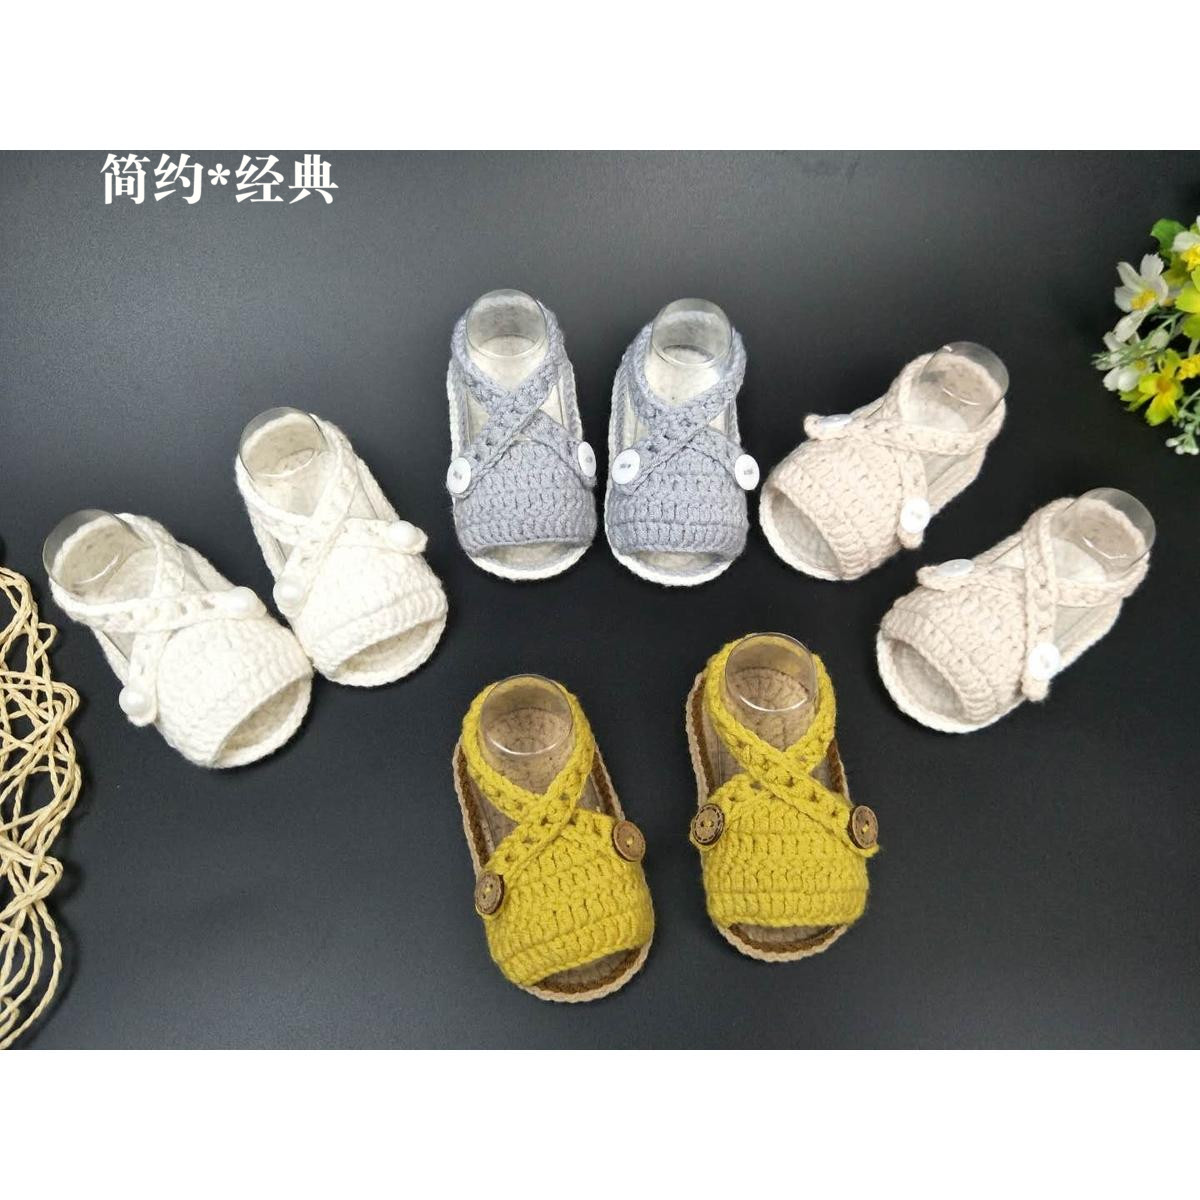 QYFLYXUEHand Knitted Baby Wool Sandals, 0-1 Year Olds, Buckles, Soft Floor Shoes, Newborn Floor Socks Summer.